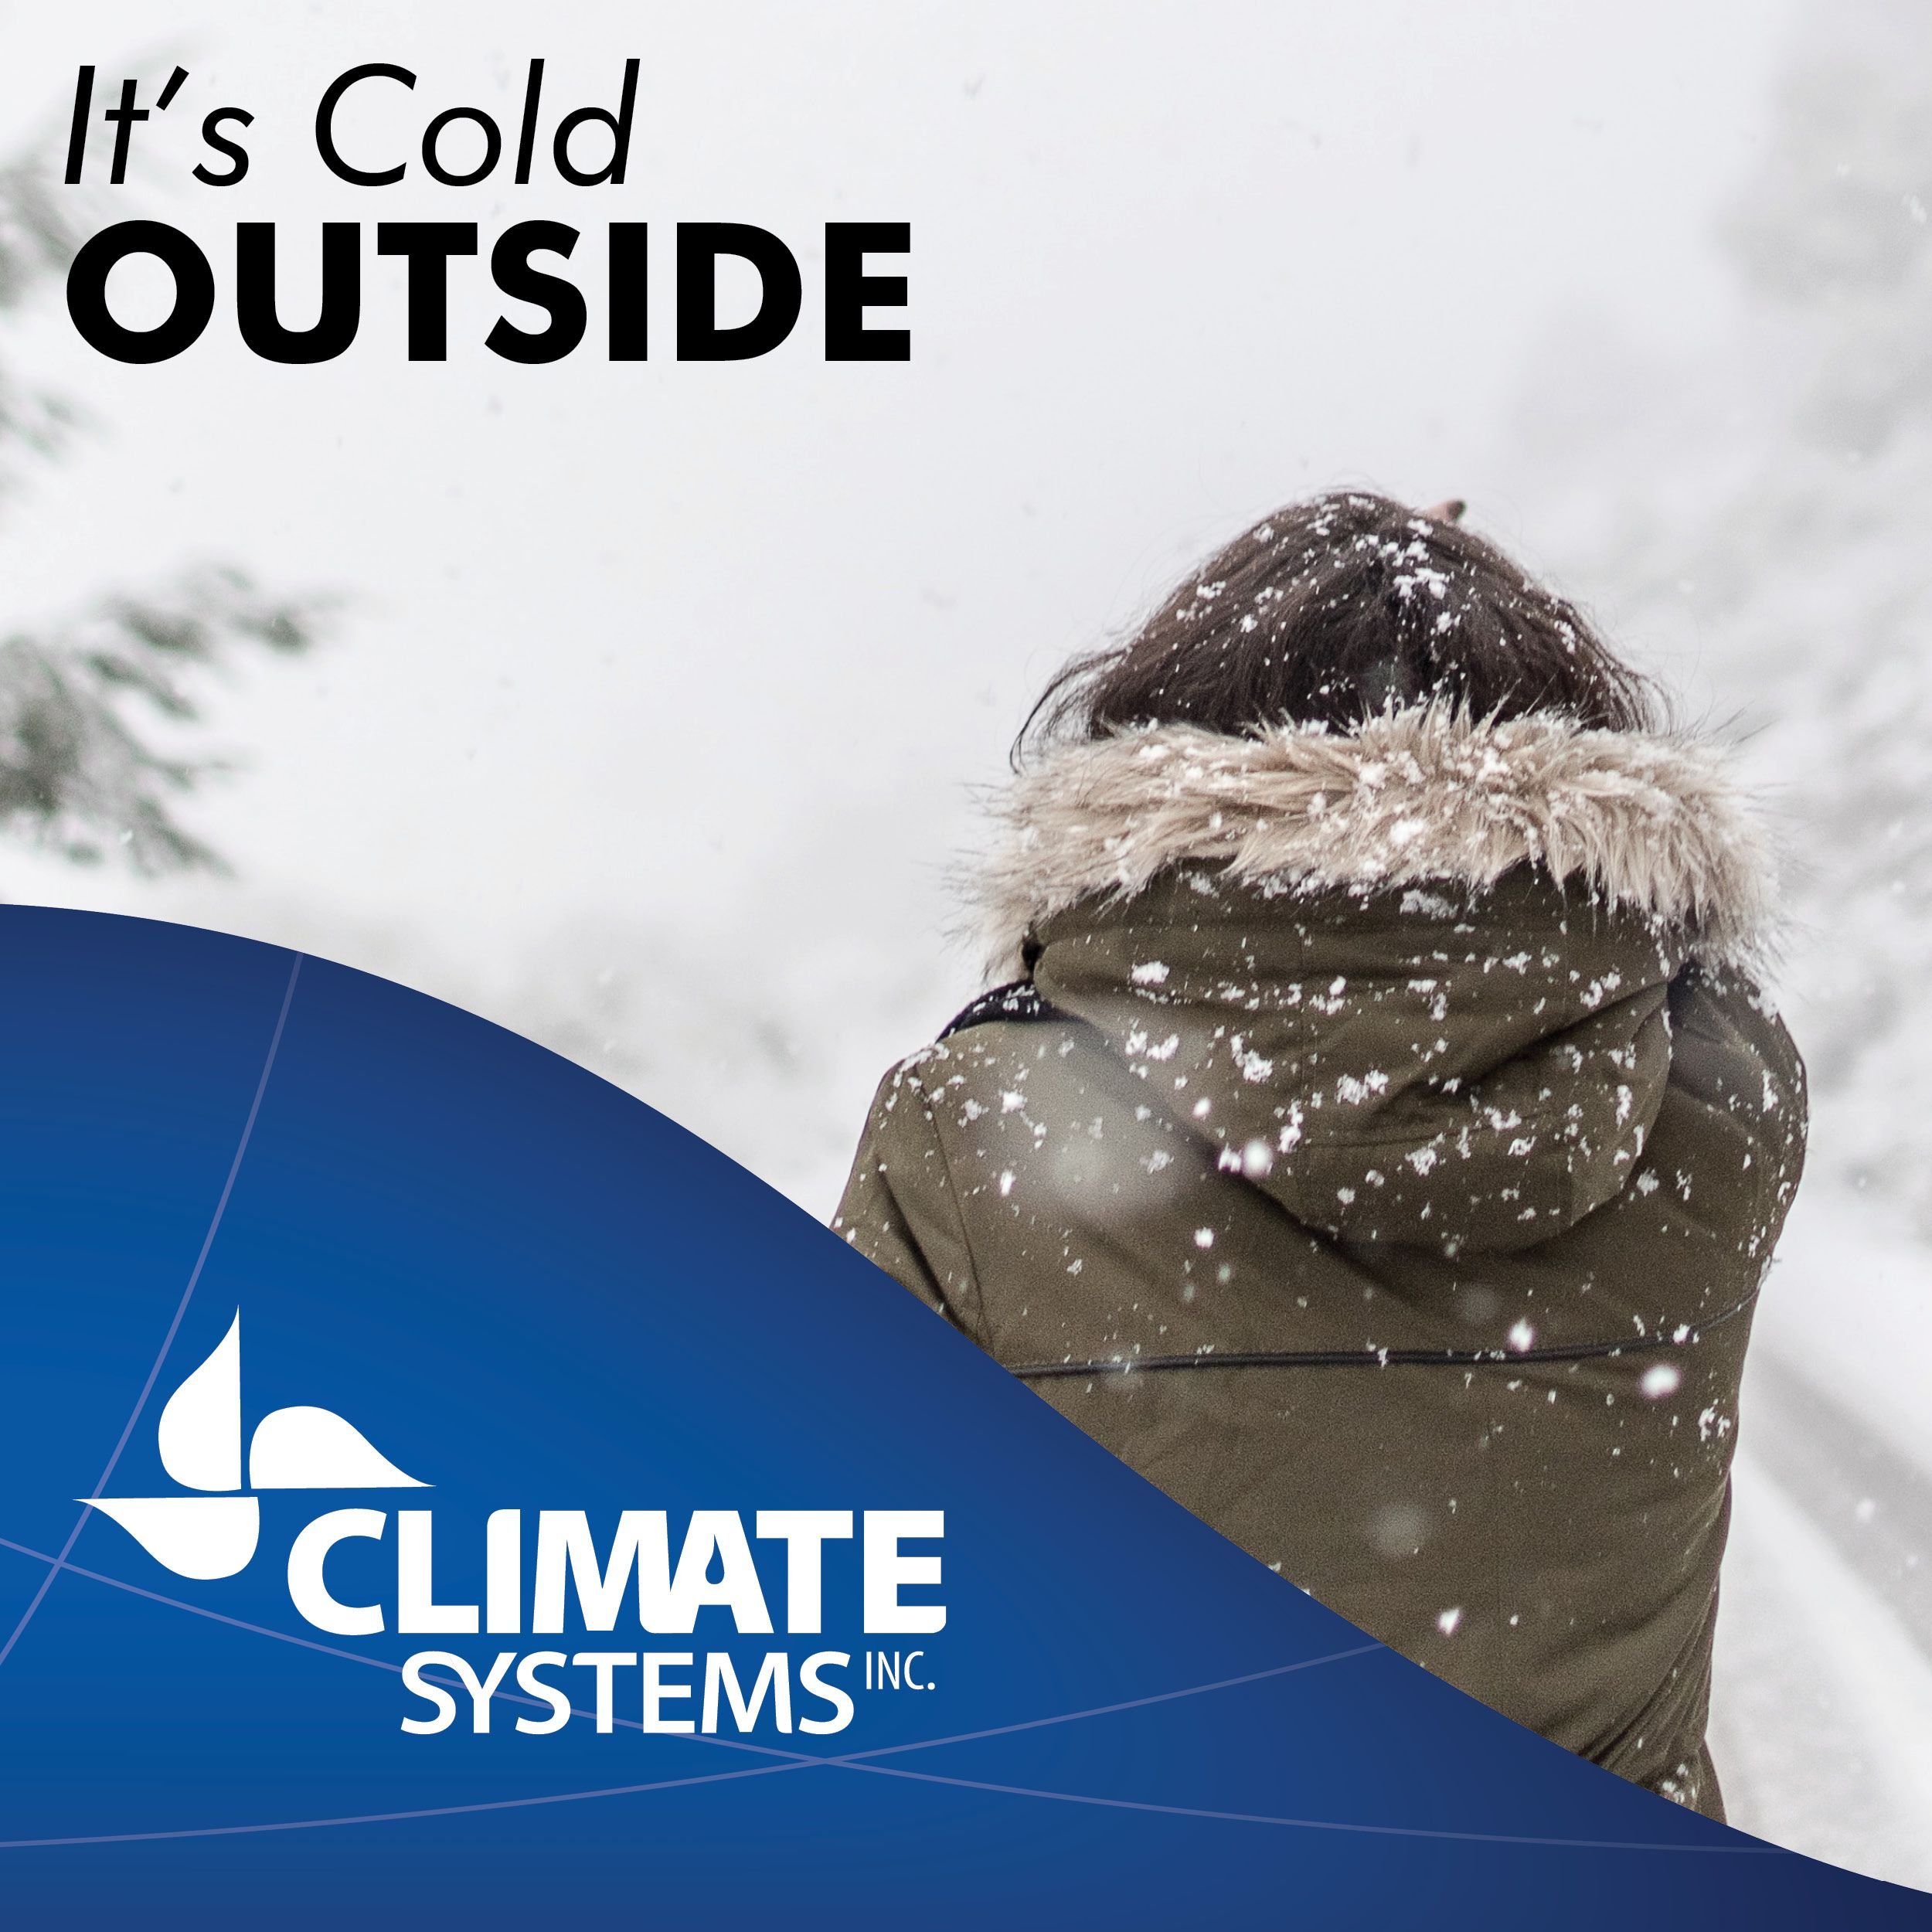 It May Be Cold But Climate Systems Is Always Ready To Help Call 605 334 2164 Or Visit Www Climatesystemsinc Com